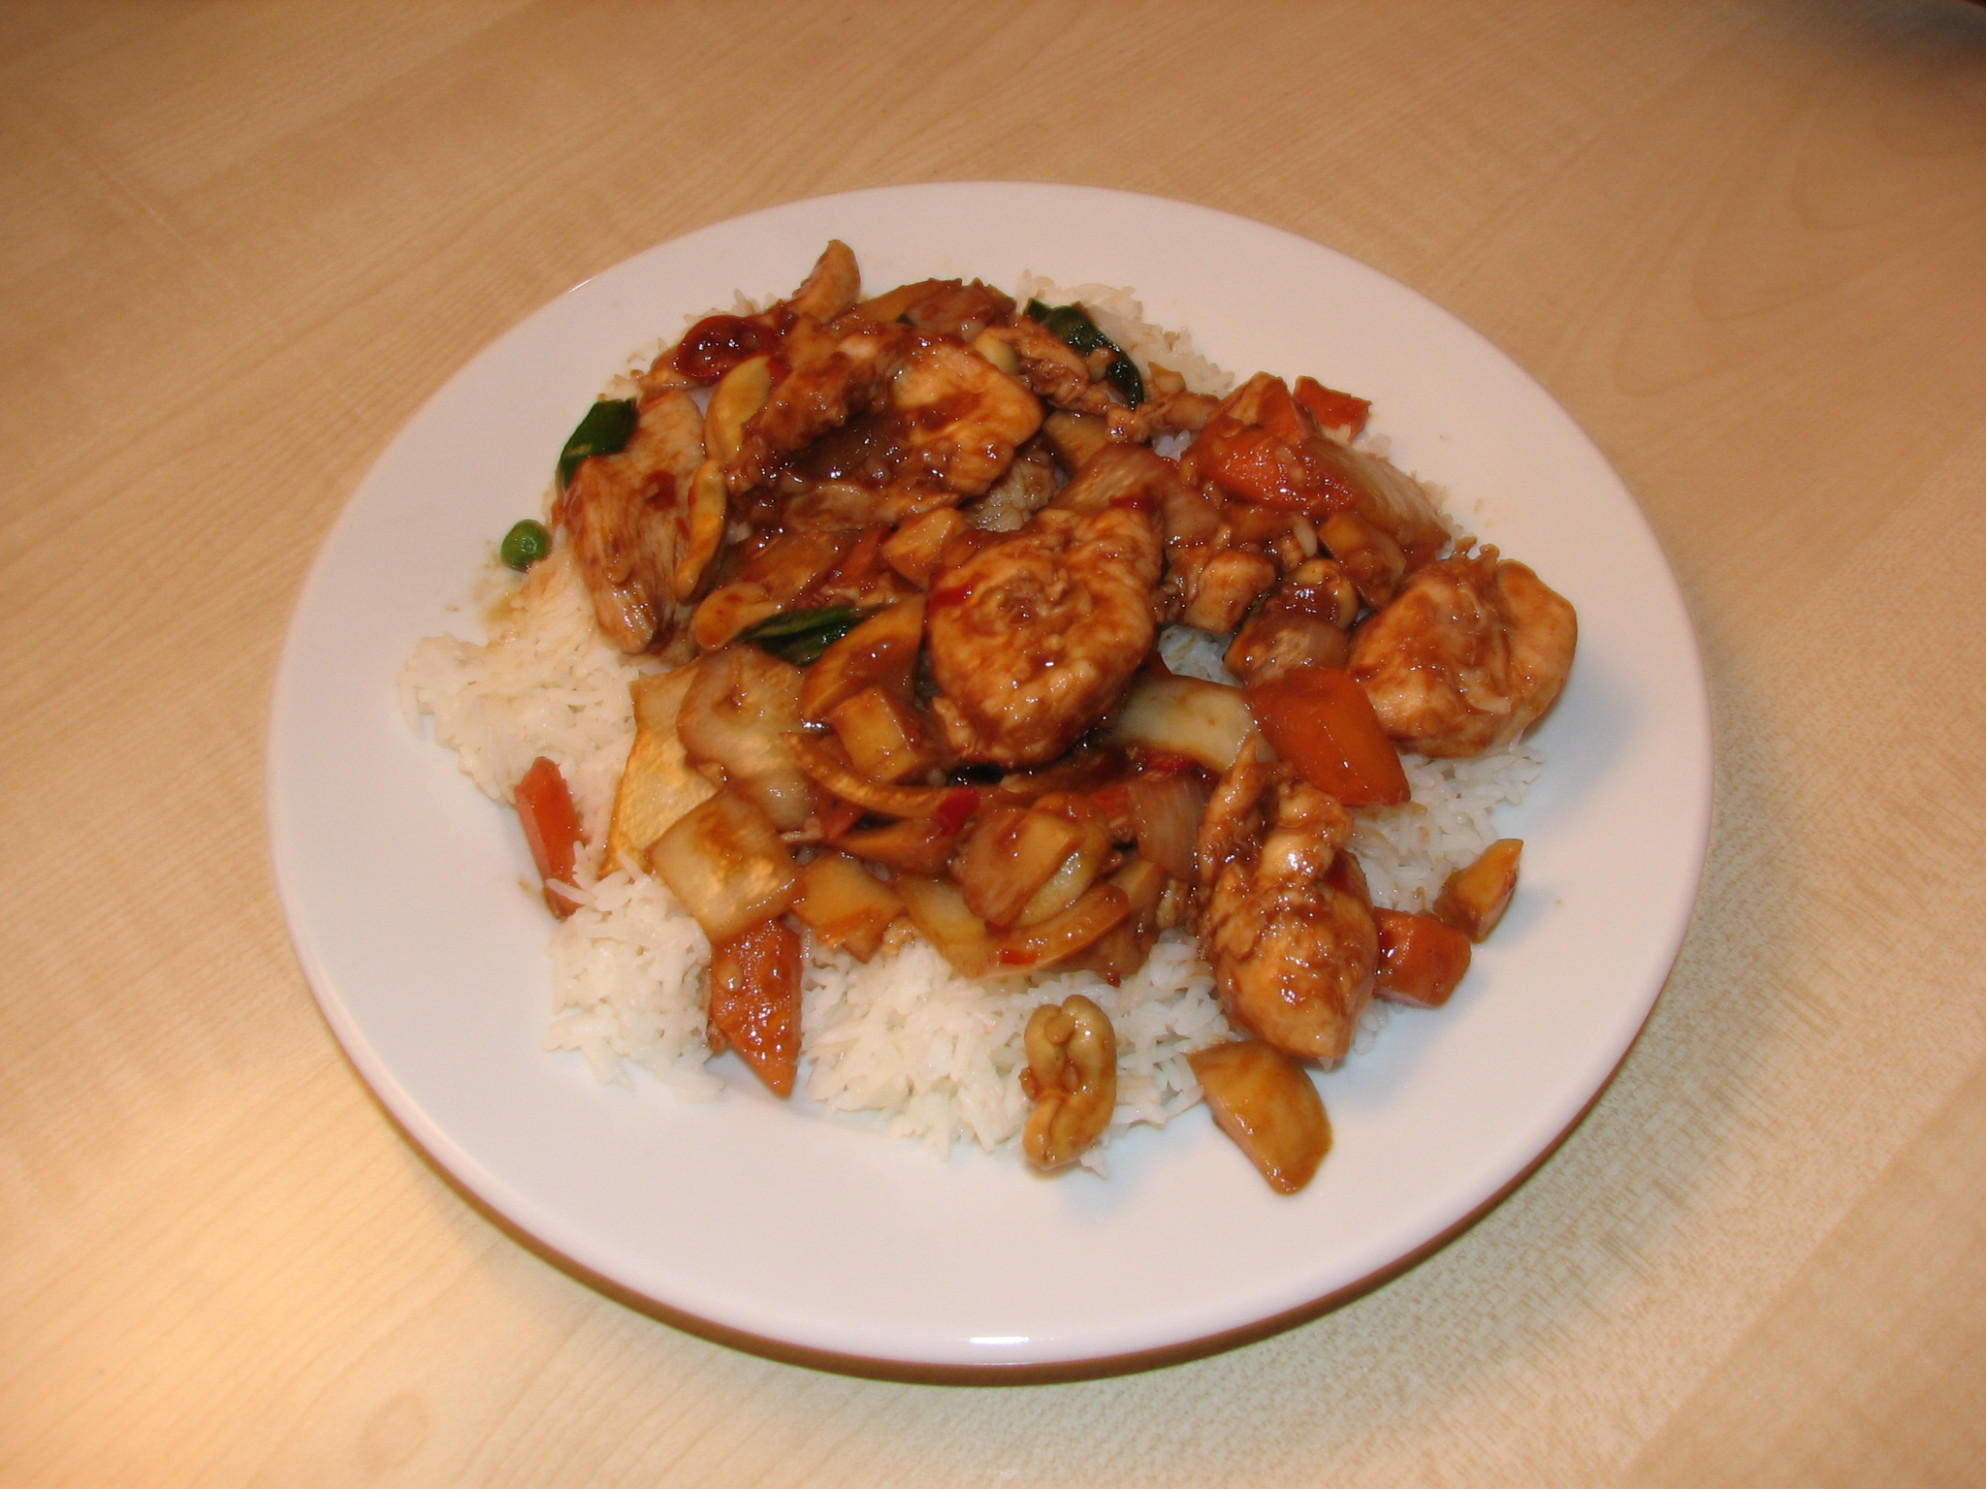 Datei:Kung Pao chicken (western version) -14